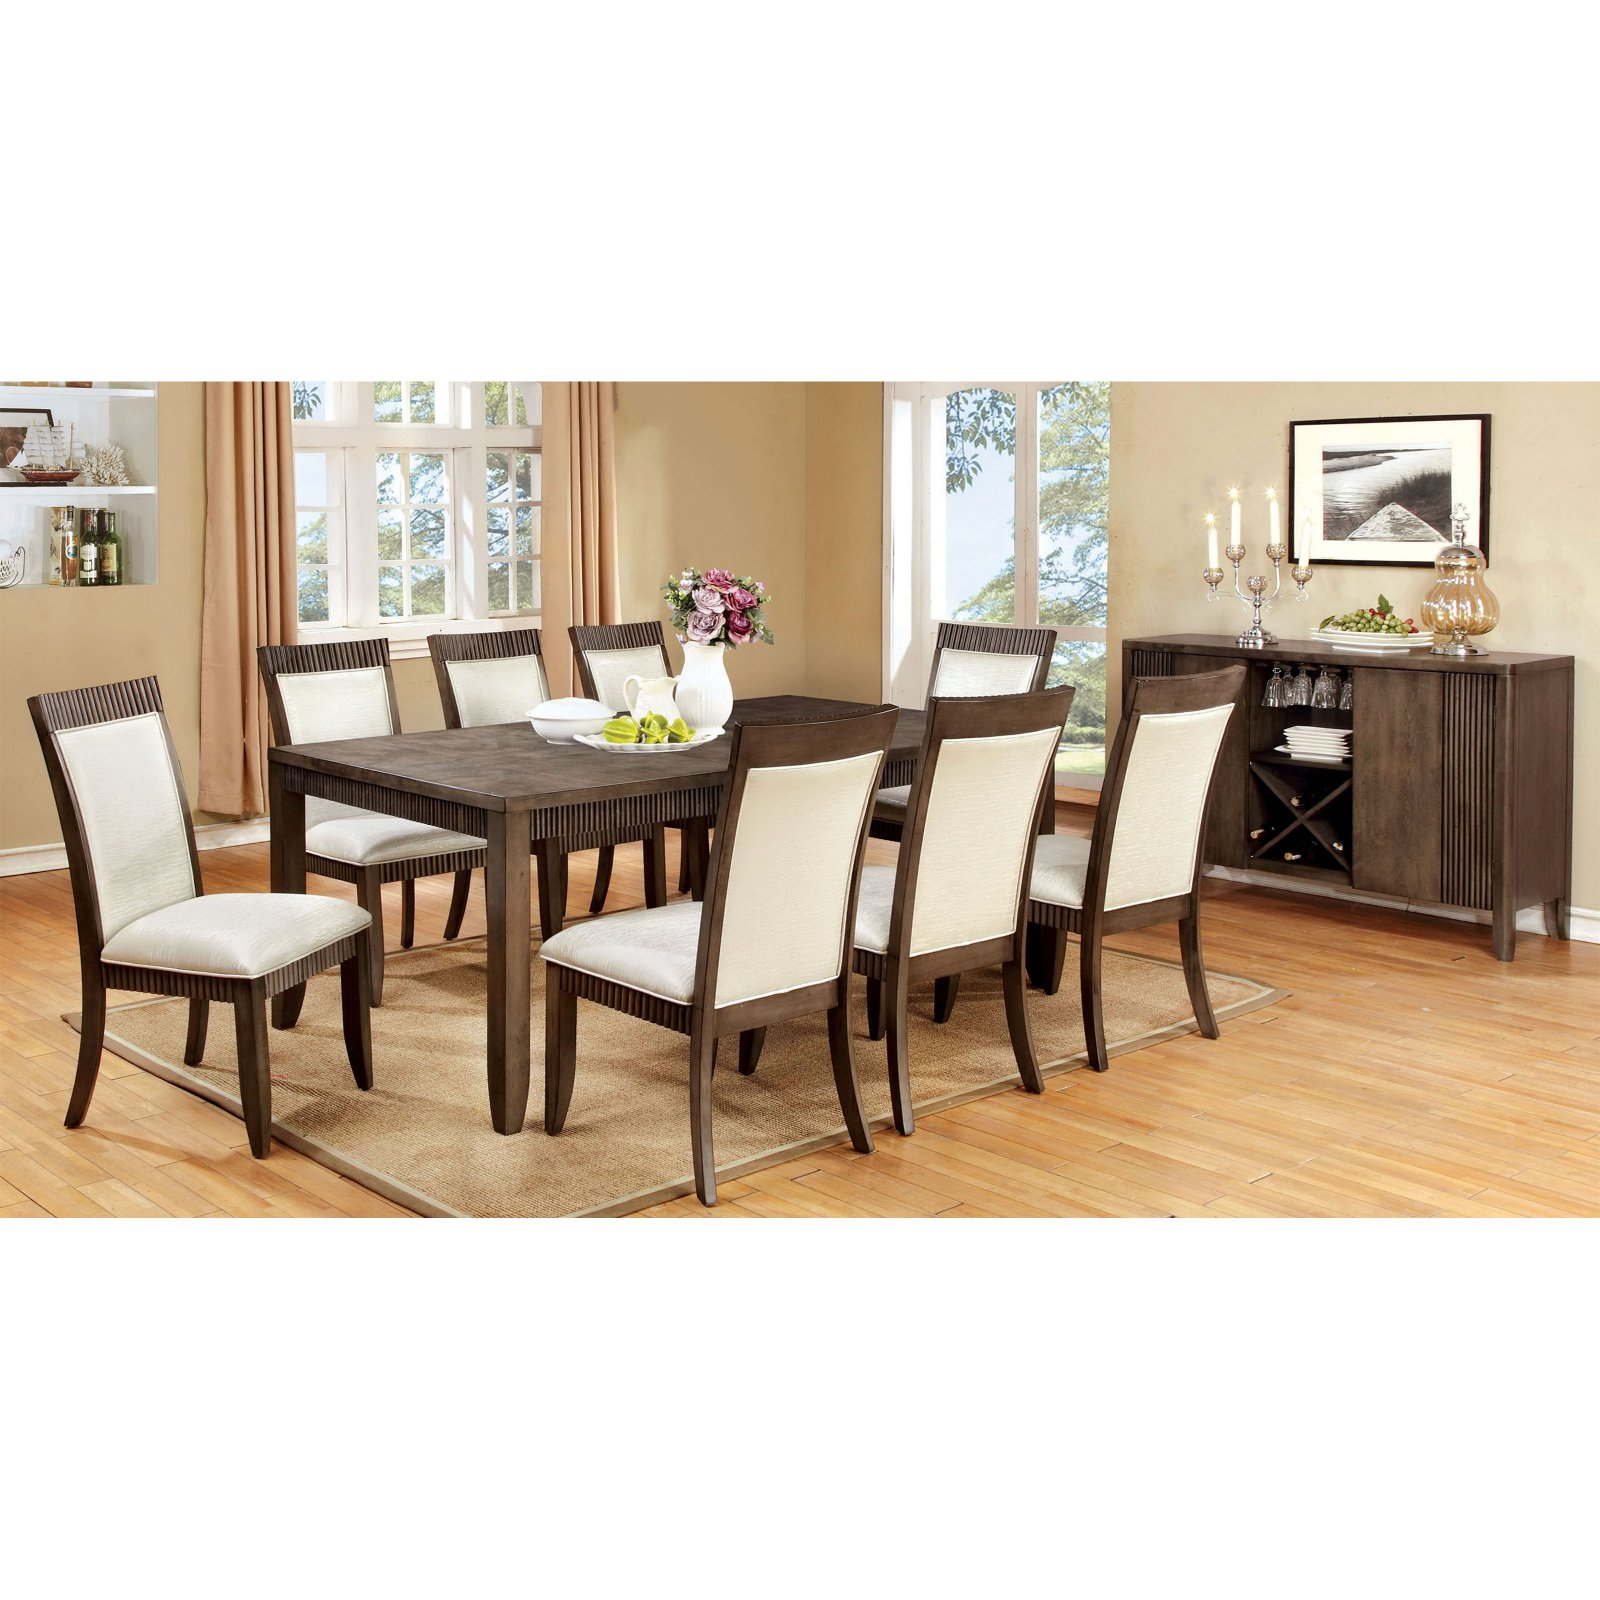 Furniture of America Midkiff Transitional Wood Dining Table